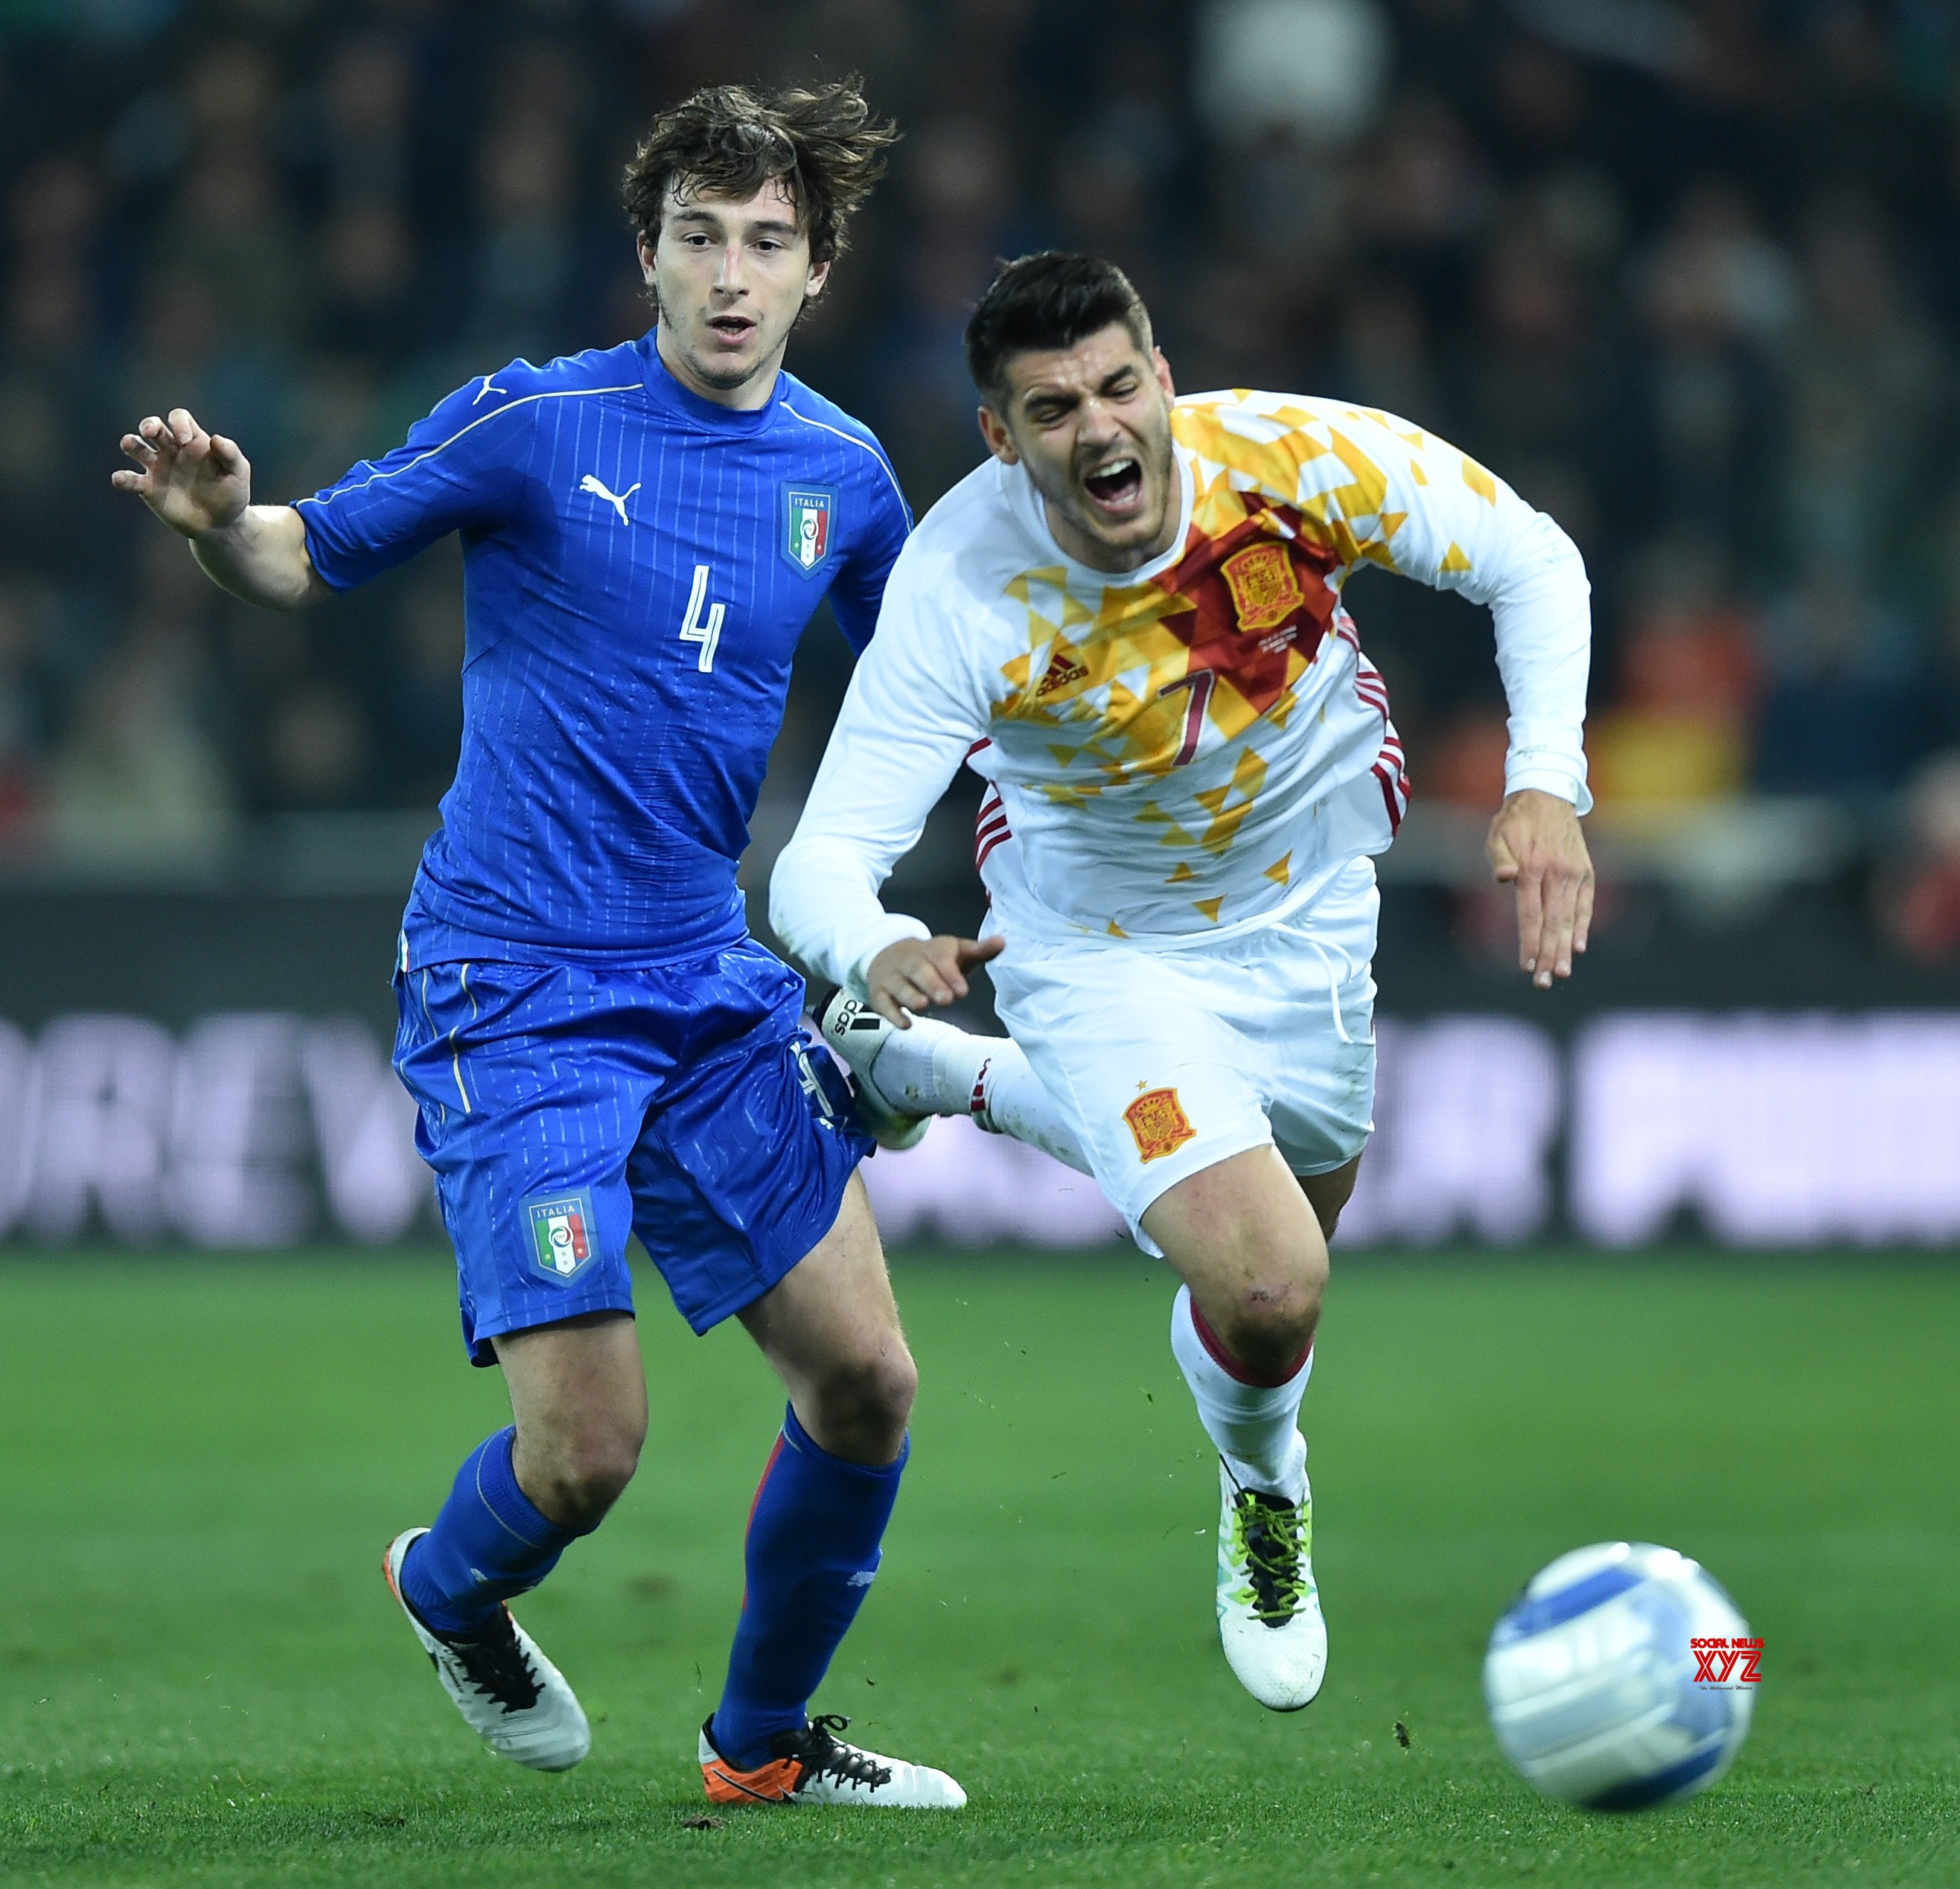 United's Darmian joins Parma on a four-year deal